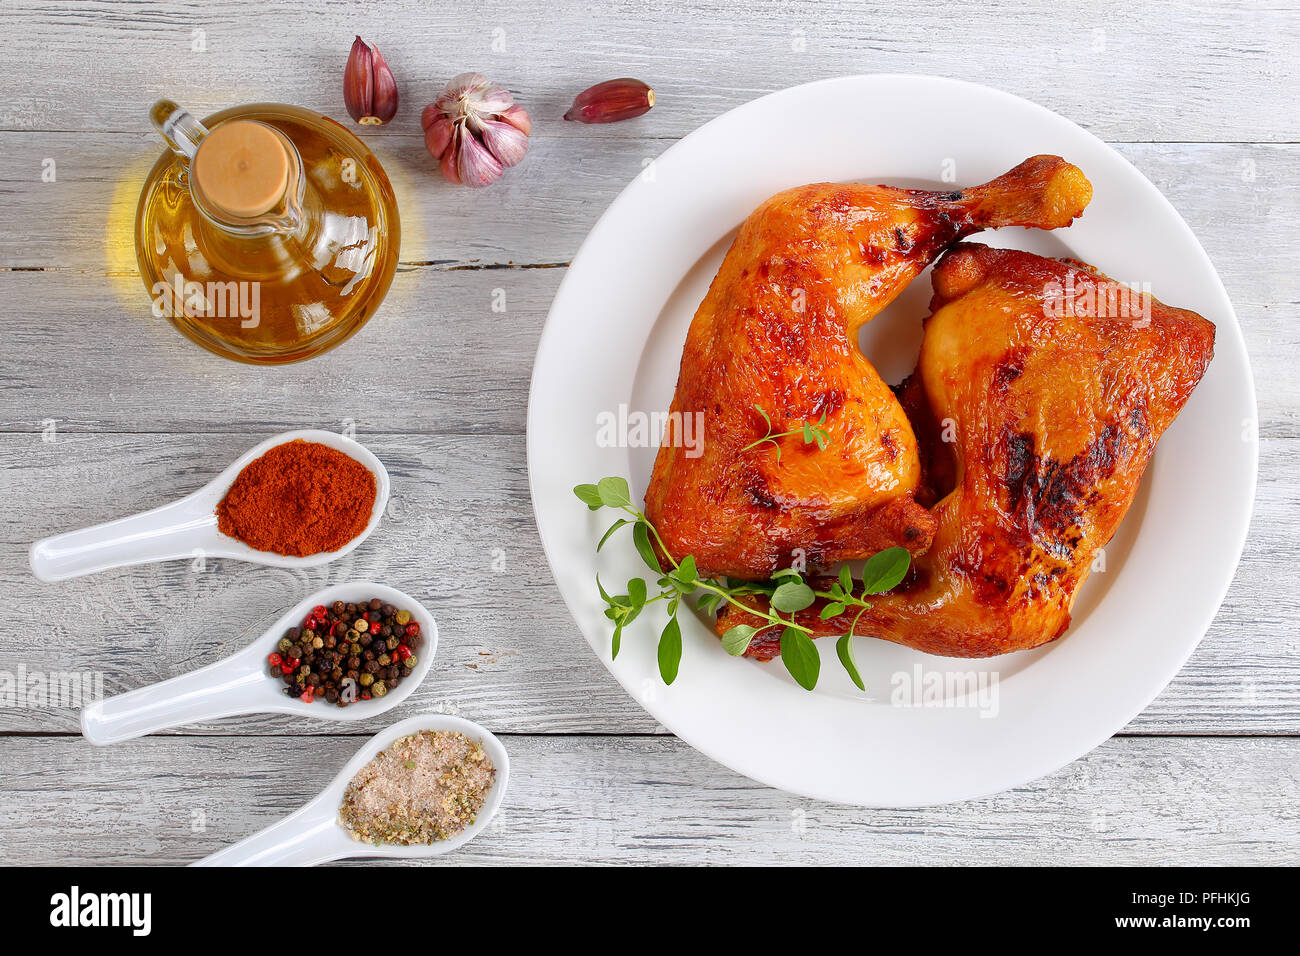 delicious roasted chicken leg quarters with crispy golden brown skin with fresh green thyme leaves on white plate, on wooden table with spices and bot - Stock Image